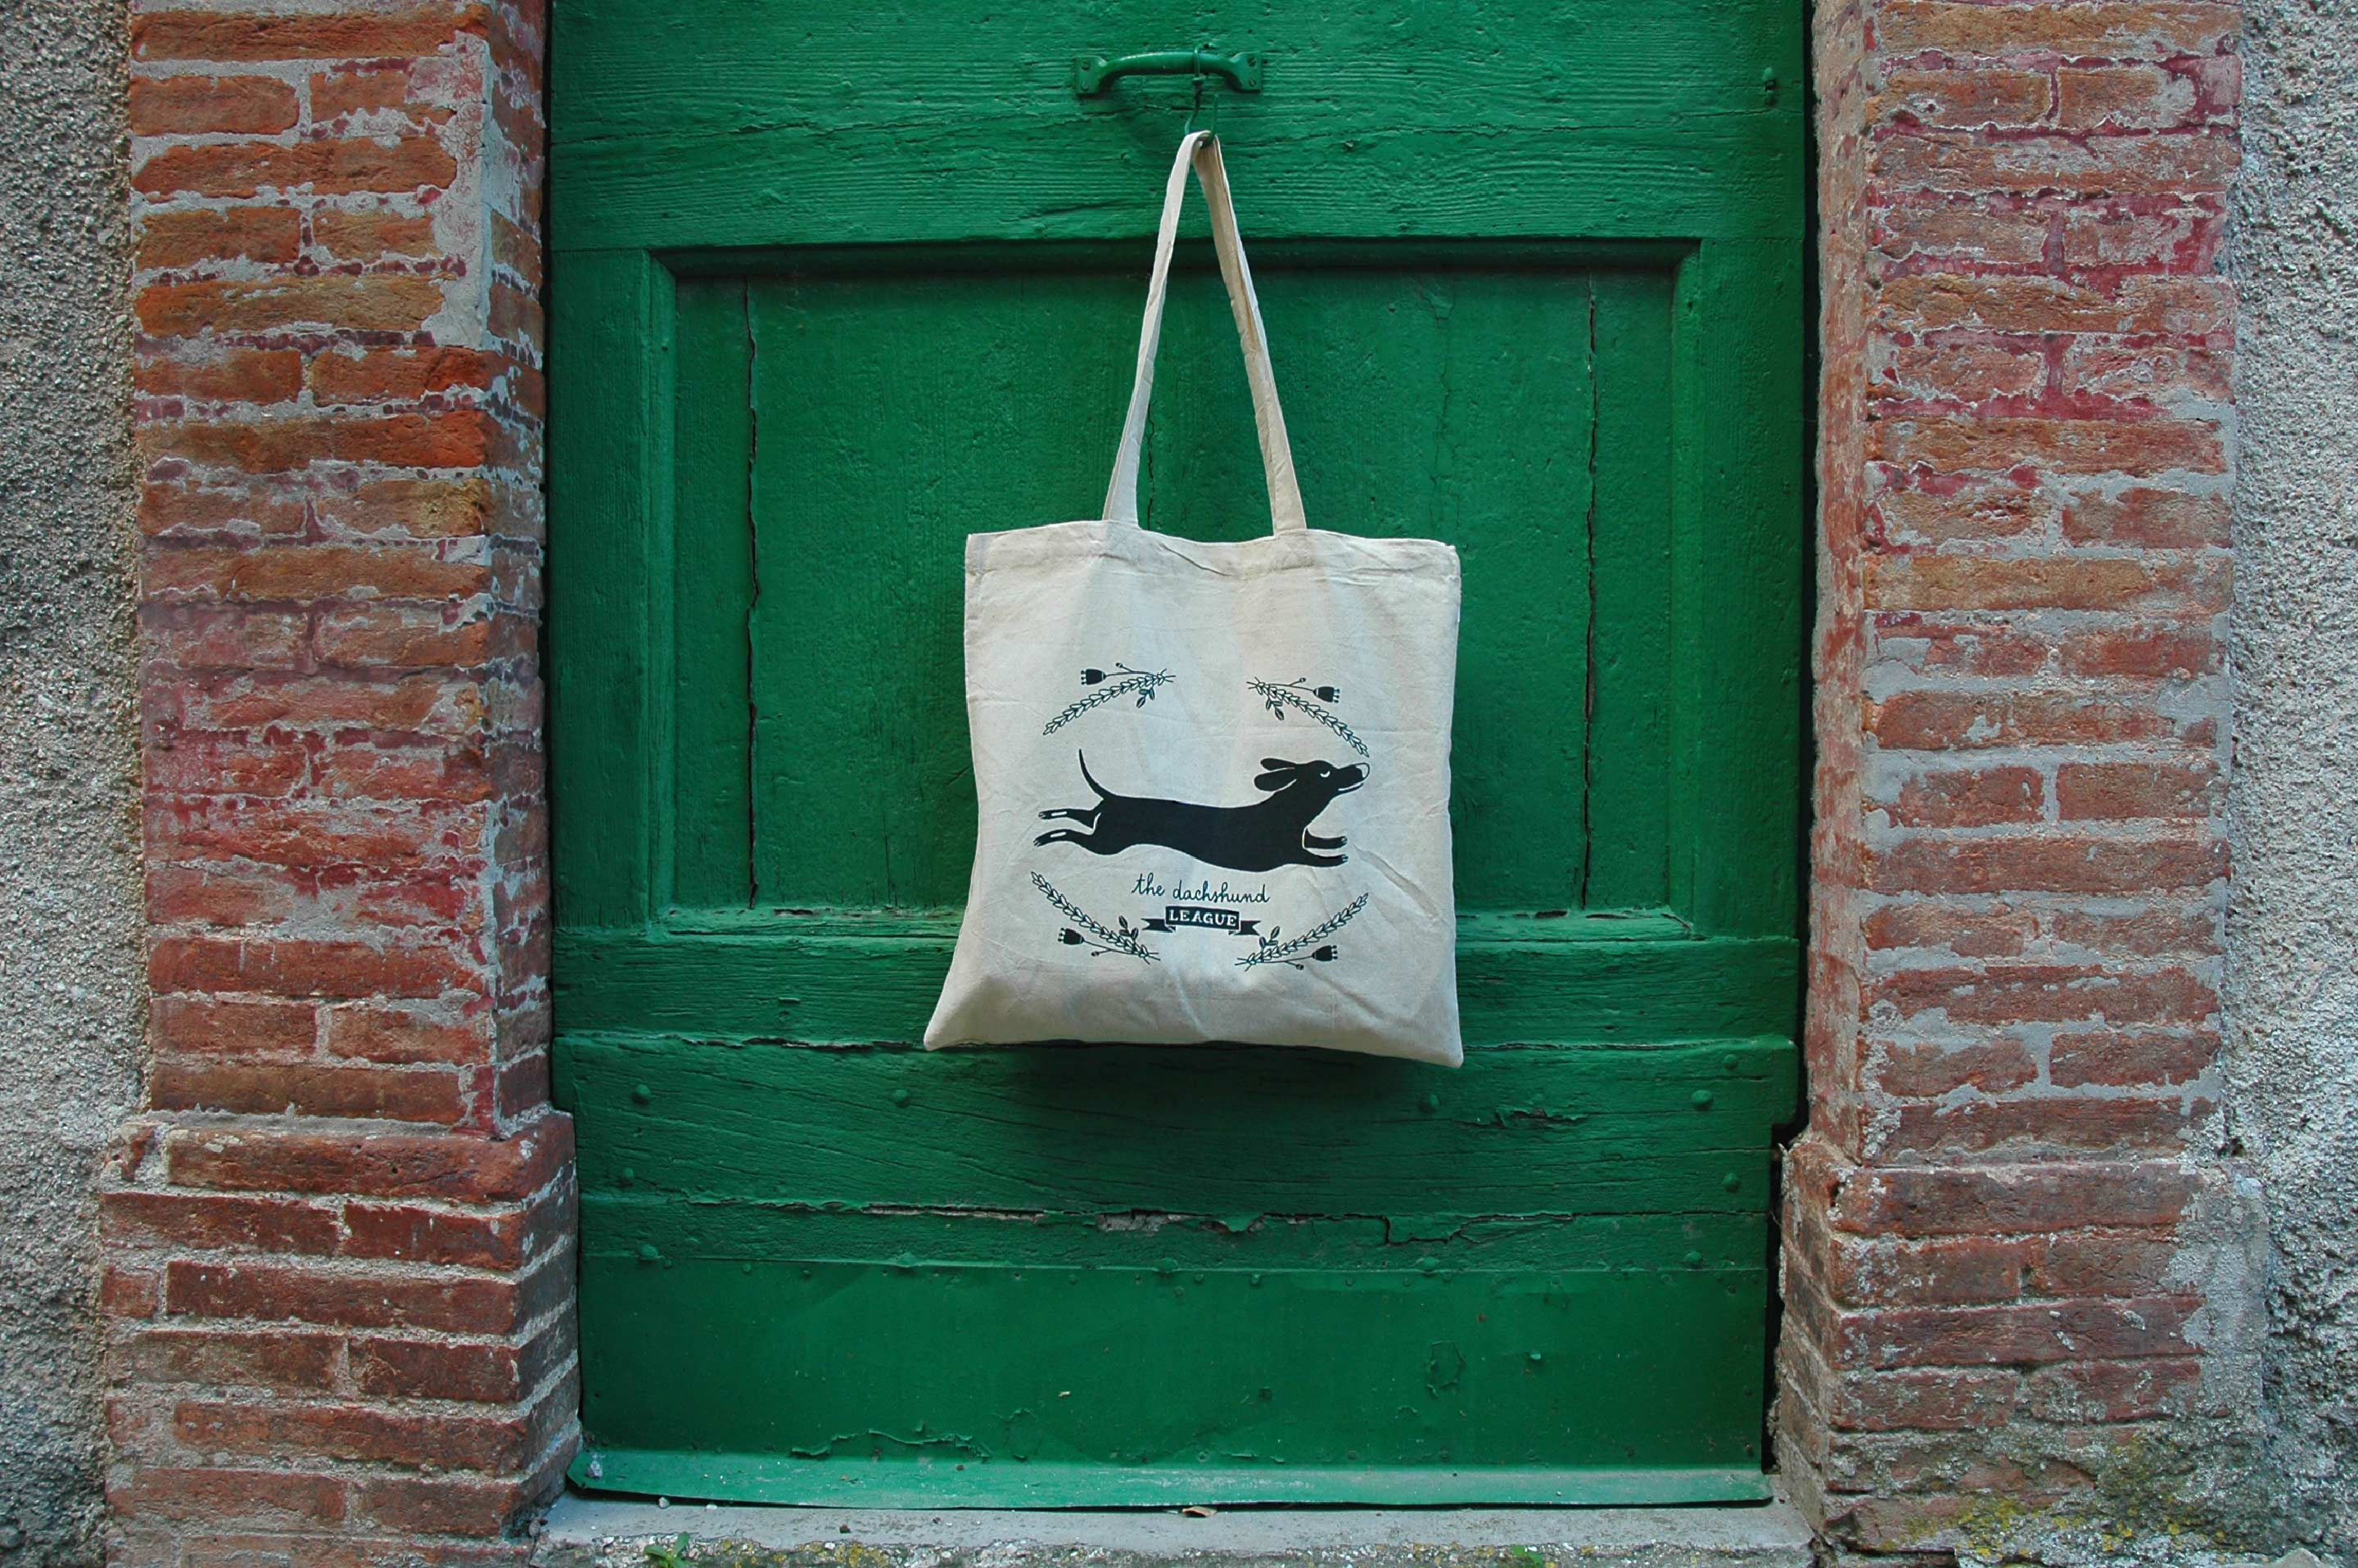 giuliasagramola_dachshund_bag_photo01_2880px